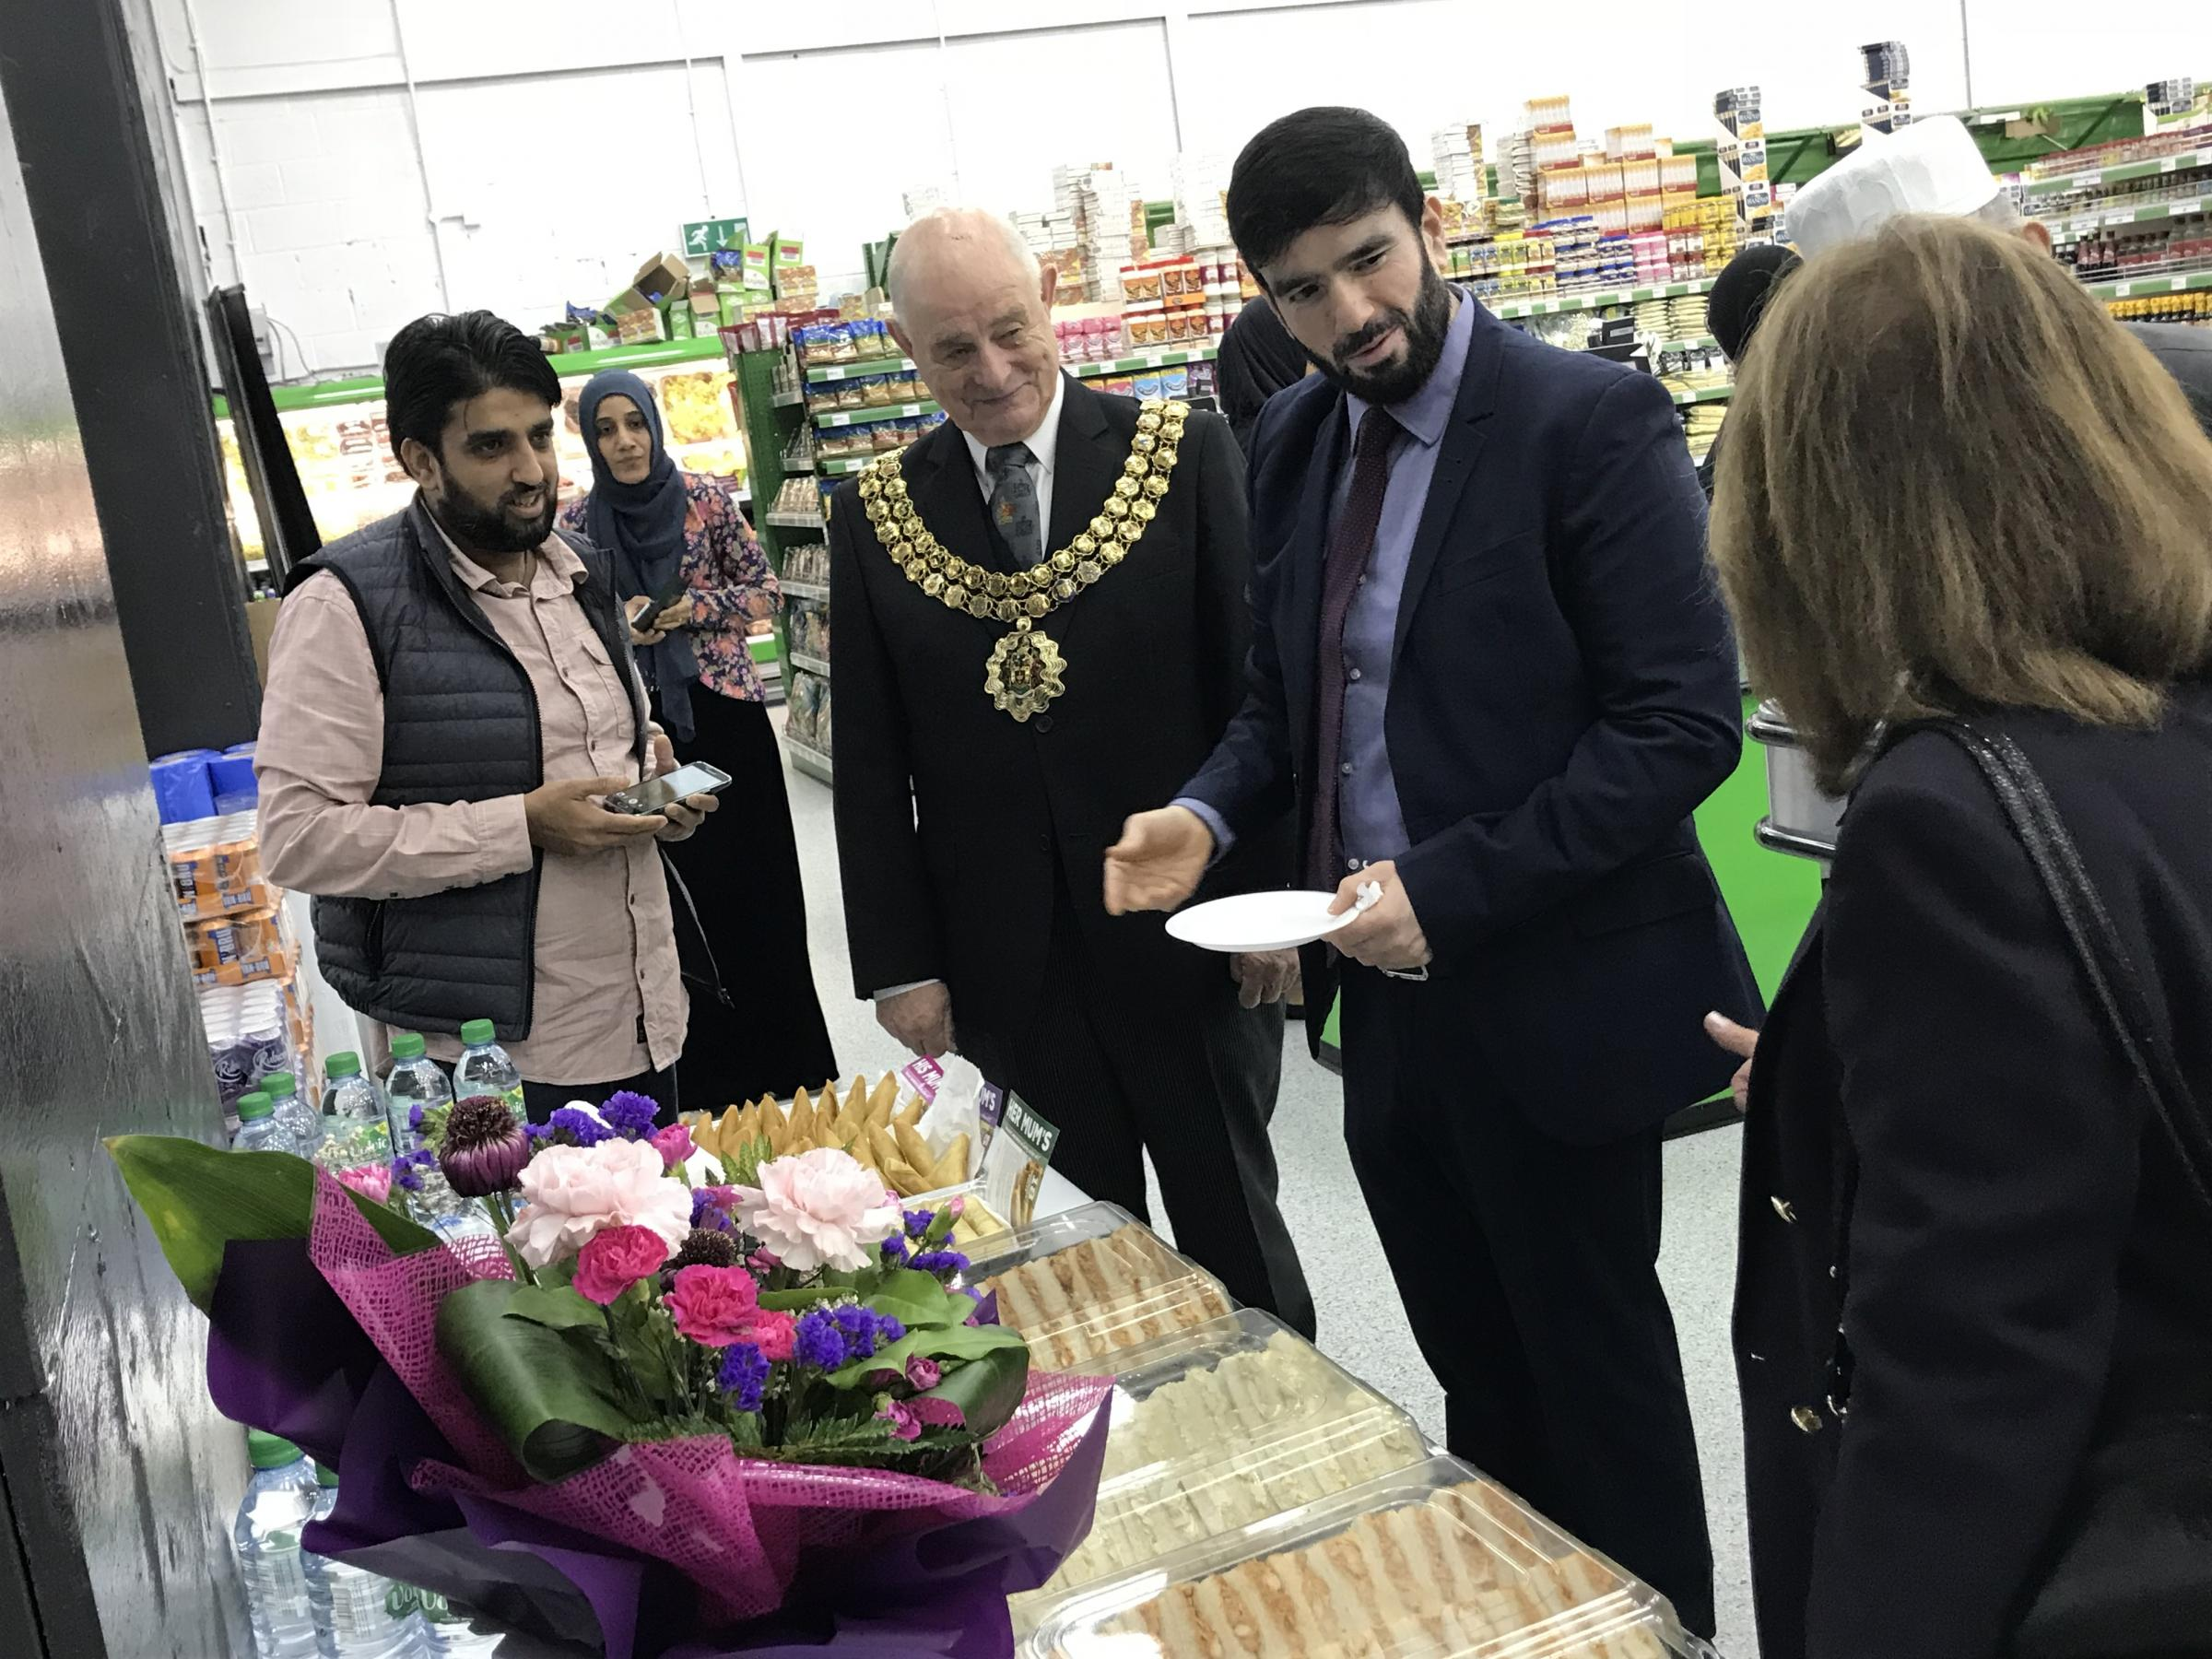 The Mayor of Bolton, Cllr Roger Hayes, at the opening of the new KW food store in Derby Street